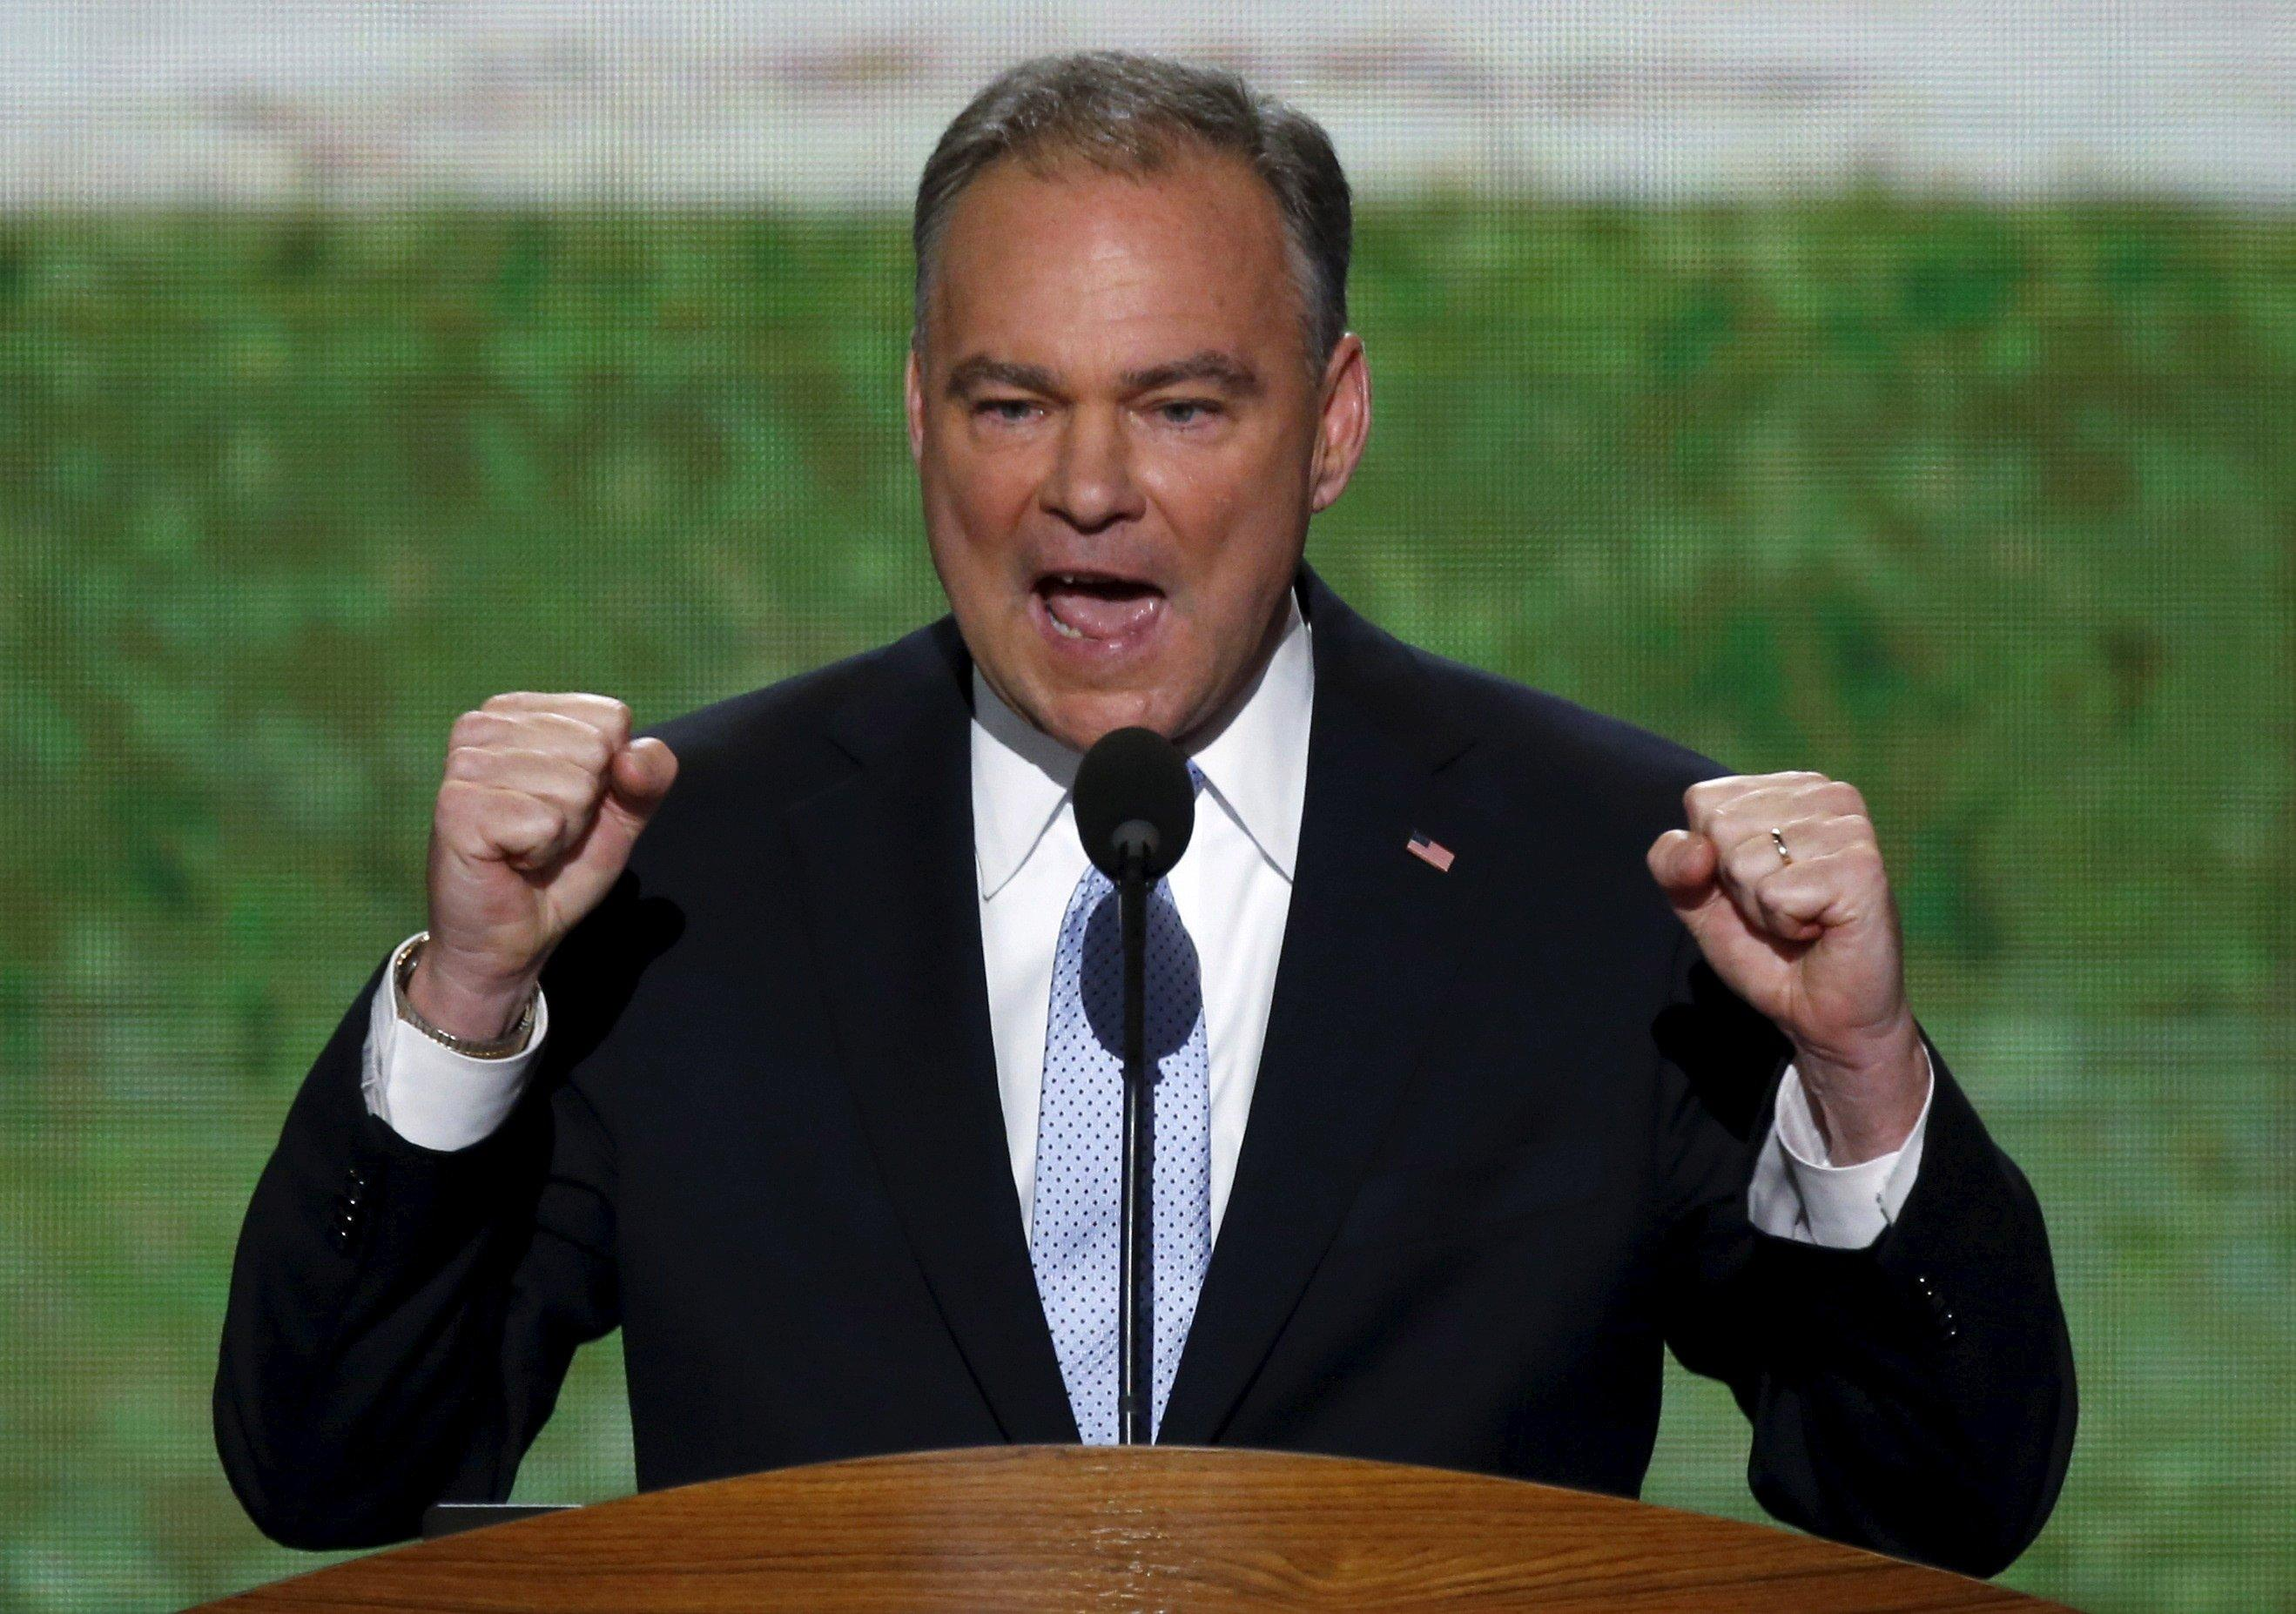 Clinton Makes 'Safe' Choice of Tim Kaine as Her Running Mate